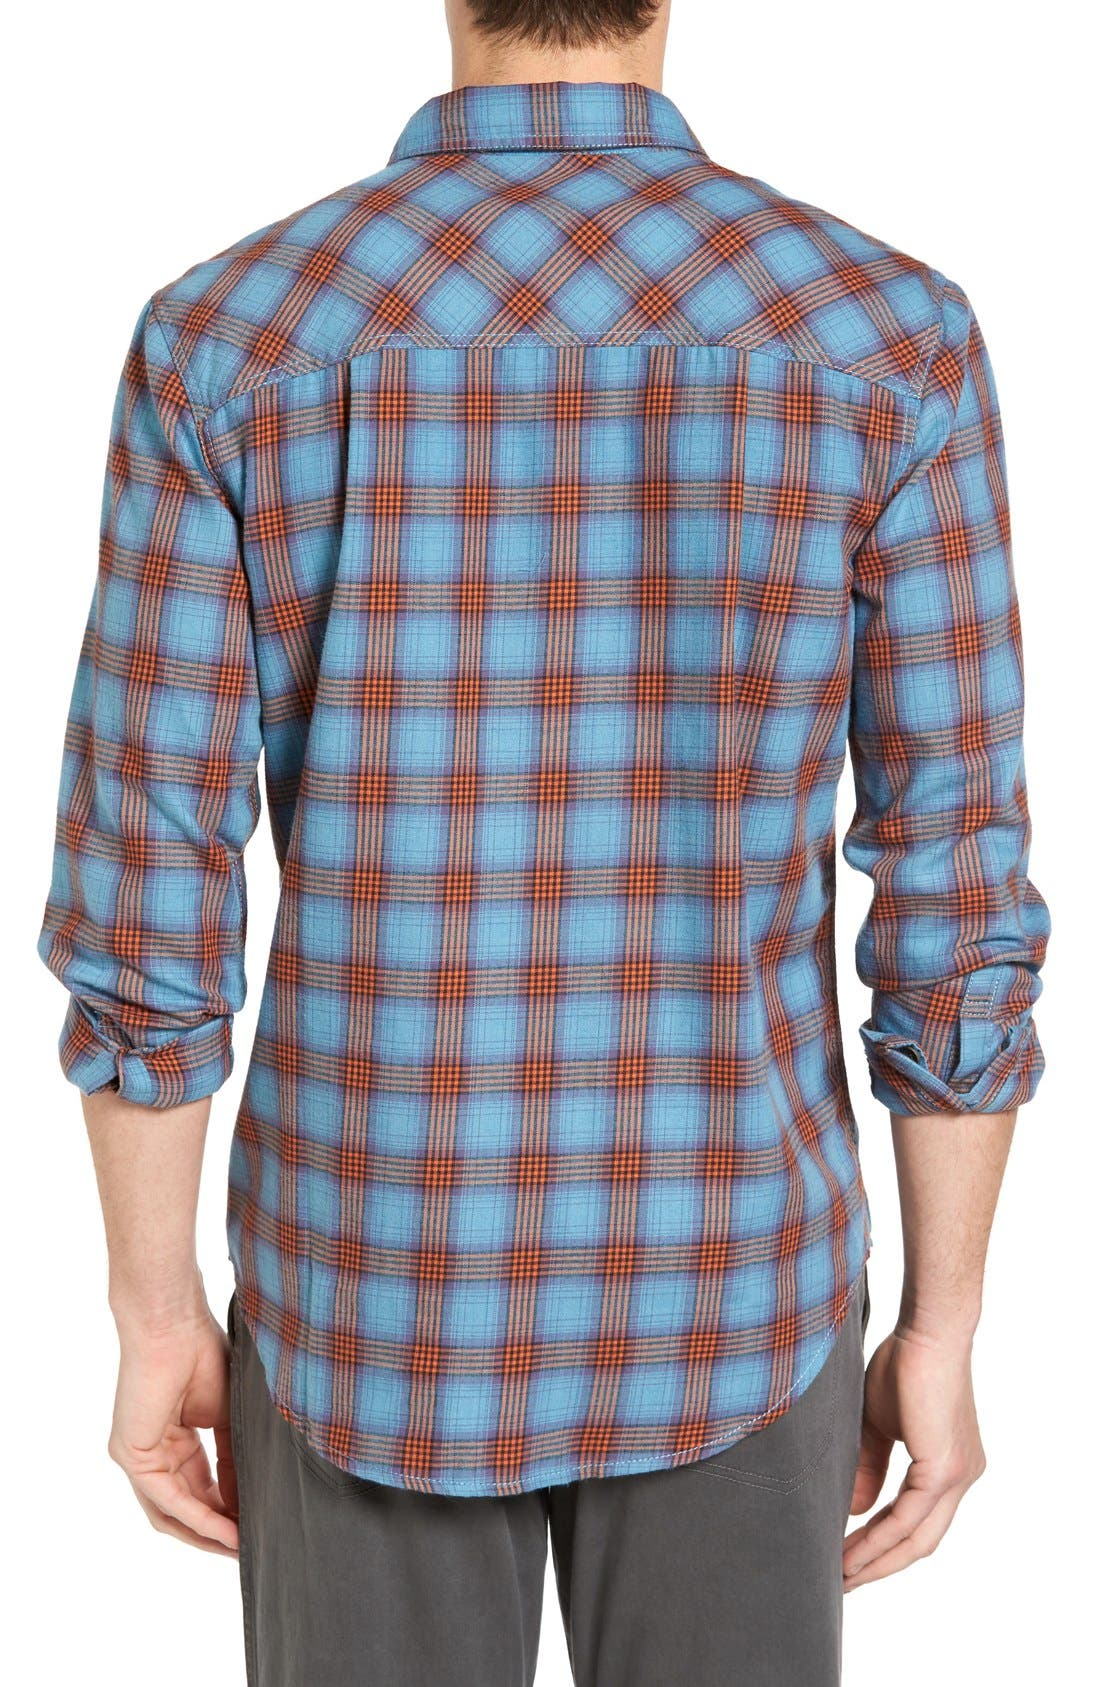 Burner Regular Fit Plaid Flannel Shirt,                             Alternate thumbnail 2, color,                             Vision Blue